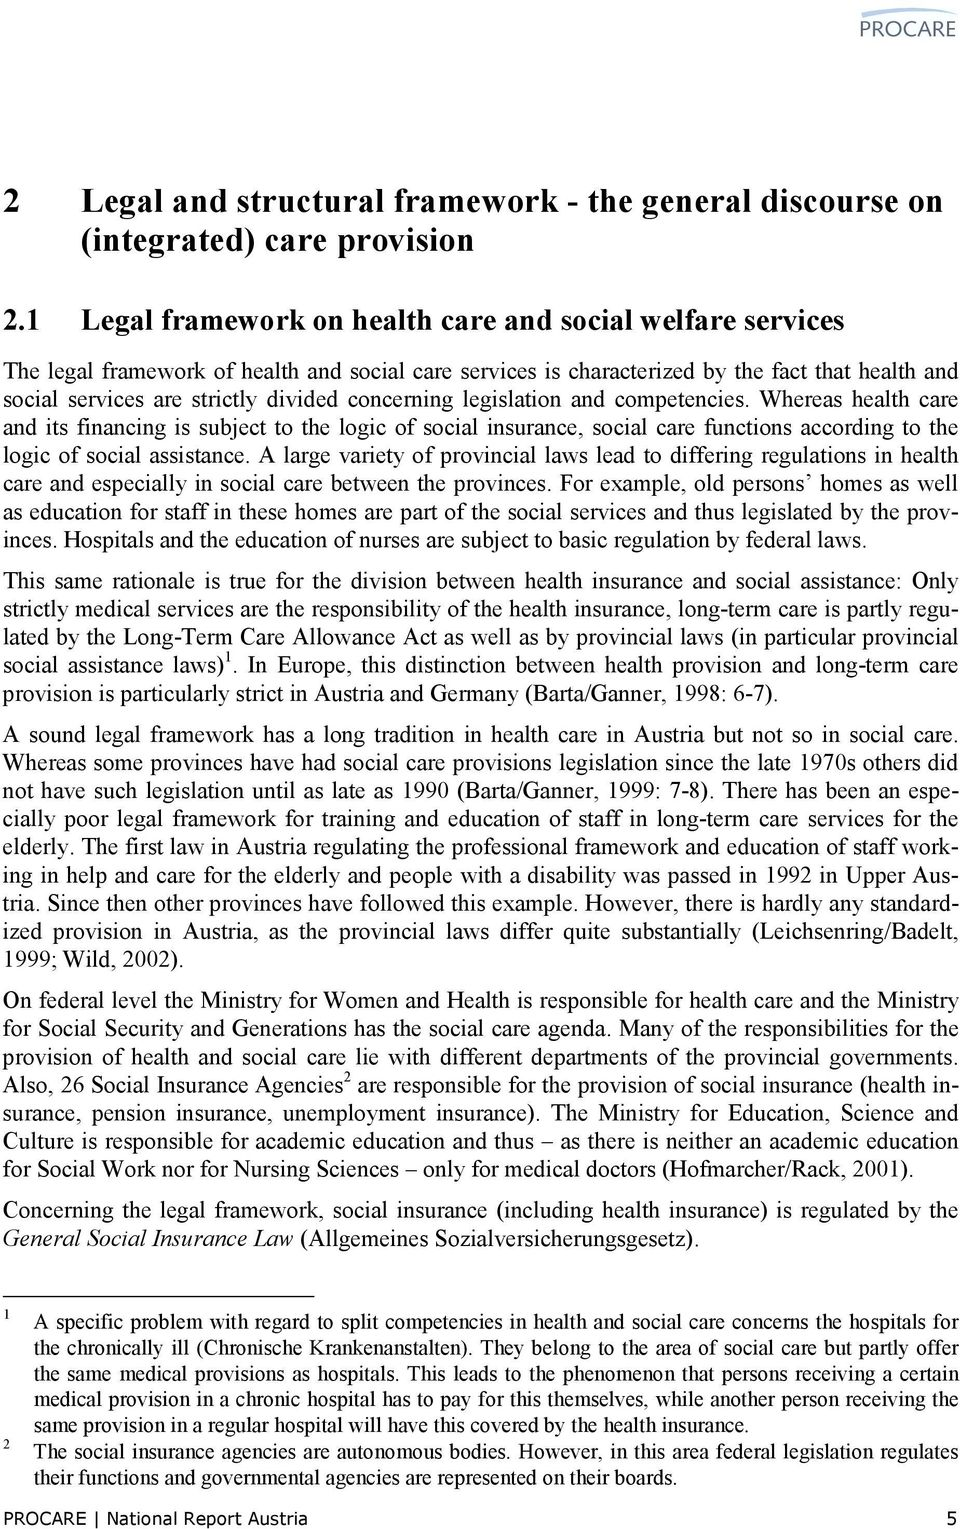 concerning legislation and competencies. Whereas health care and its financing is subject to the logic of social insurance, social care functions according to the logic of social assistance.